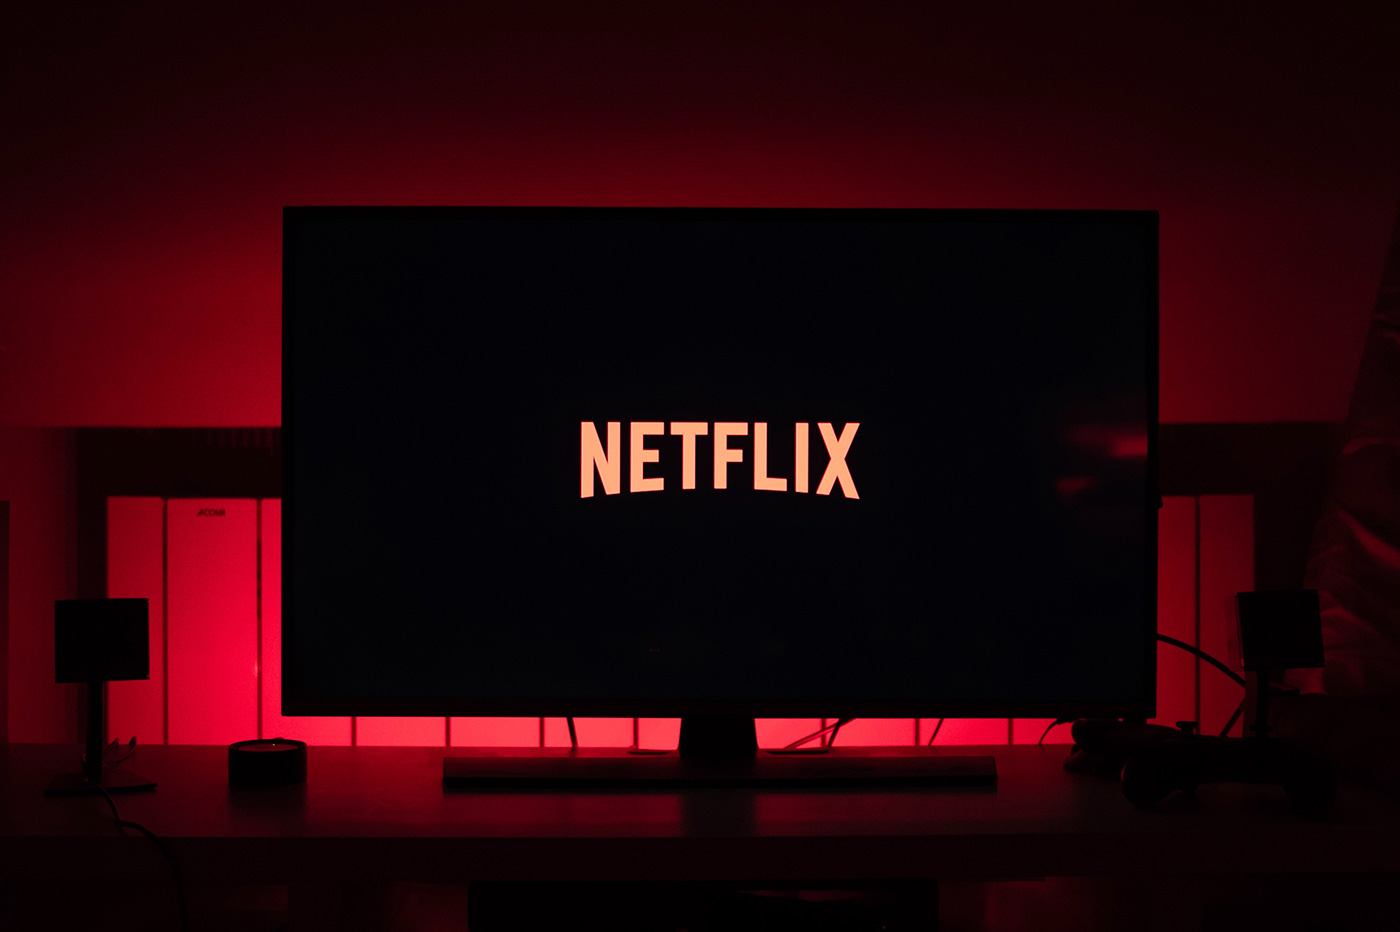 Sur Netflix, quels films et séries quittent le catalogue en septembre ?